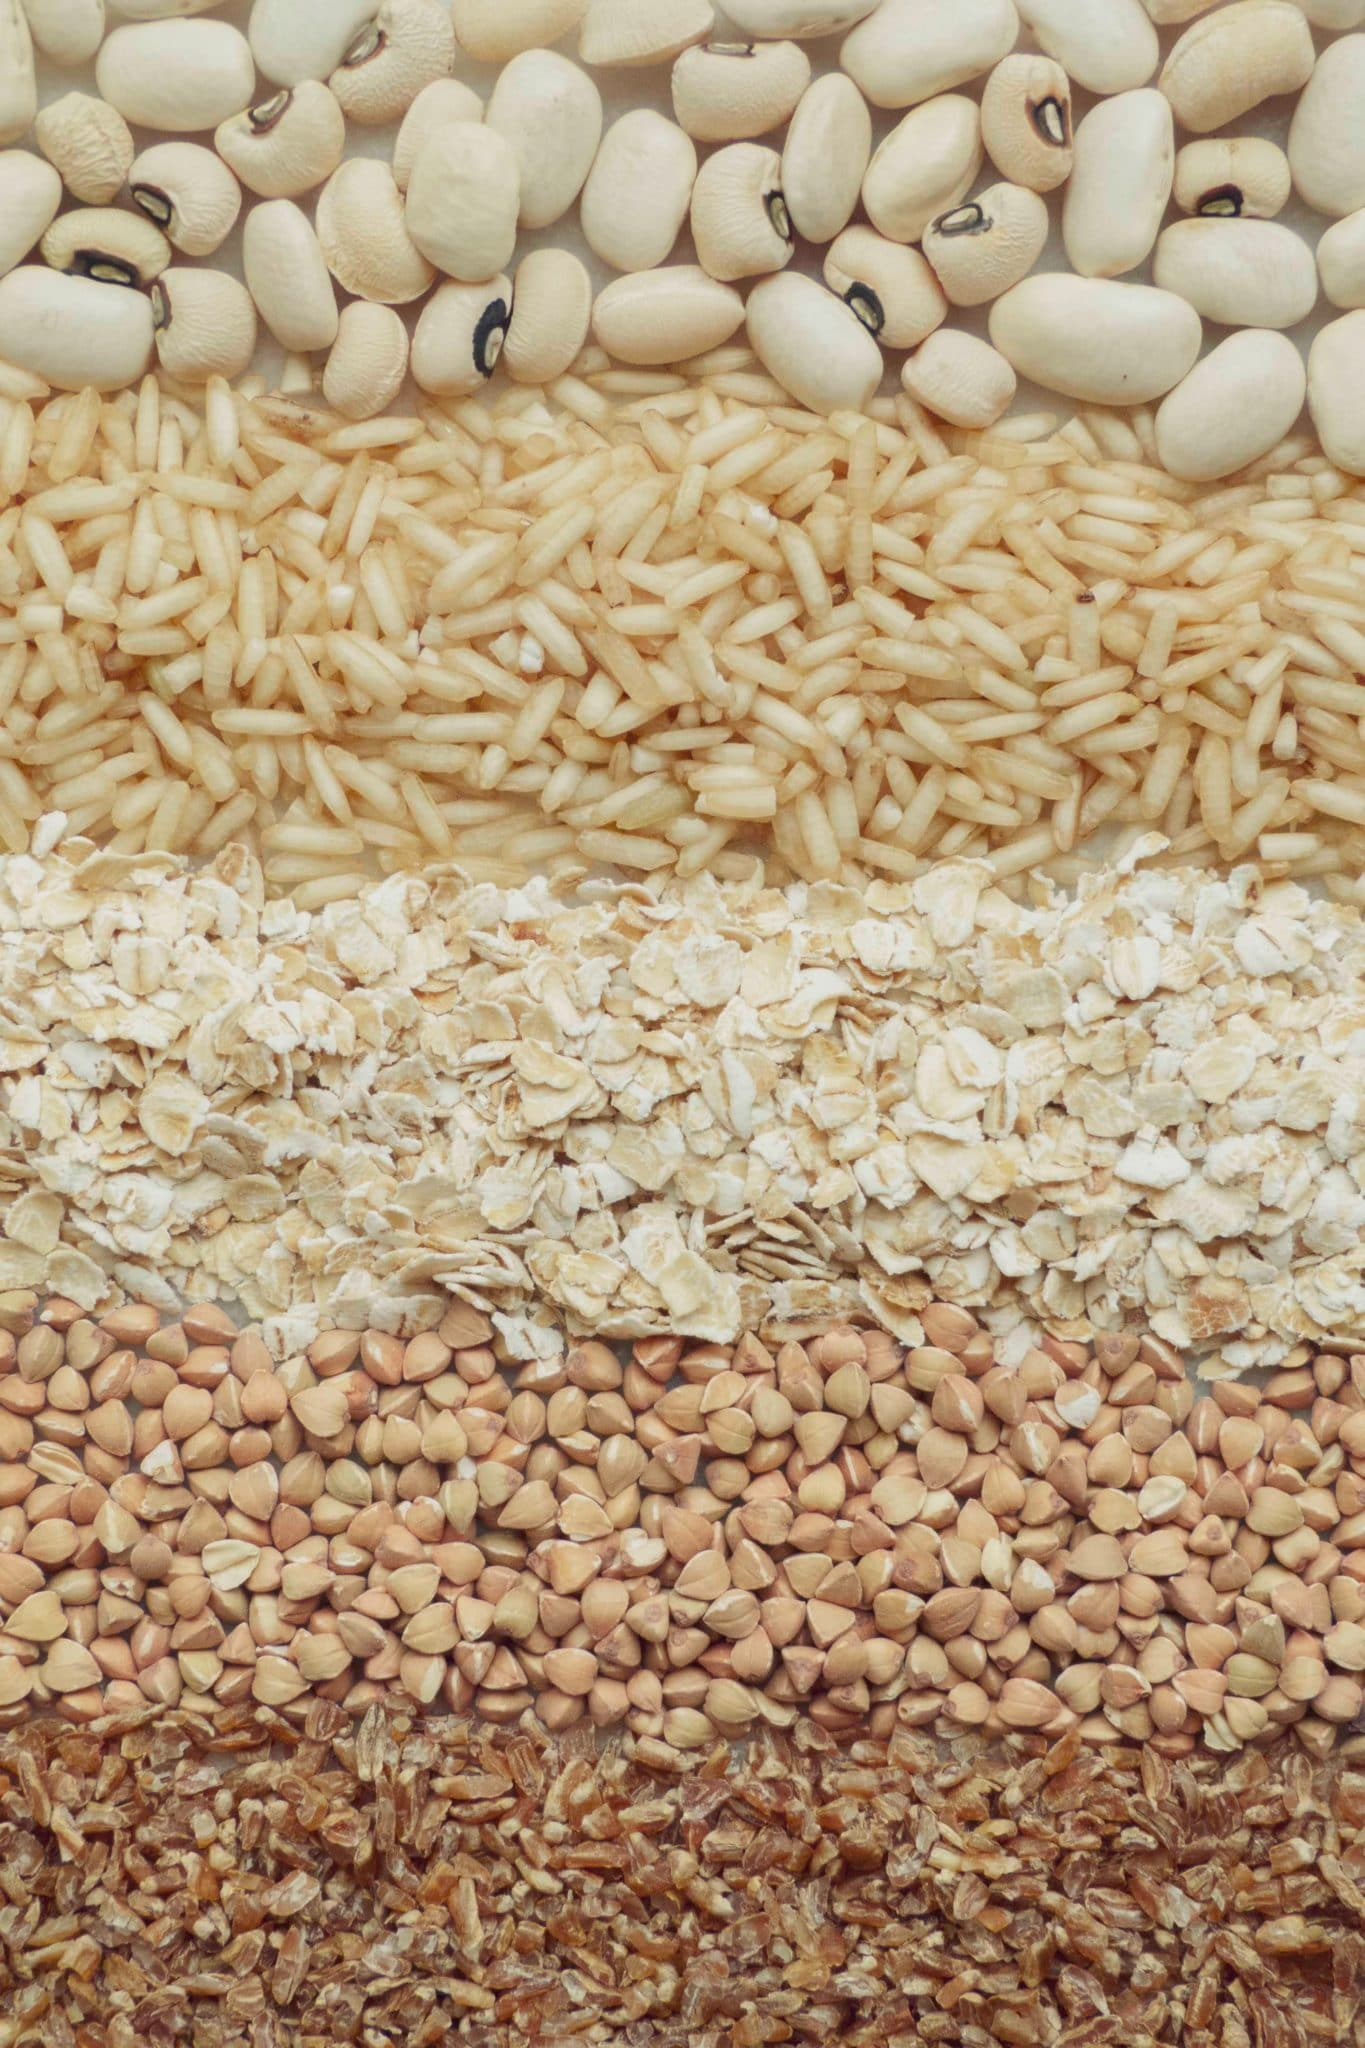 a variety of different grains with antinutrients like beans, rice, oats, buckwheat and farrow laid in a layer to create a colour gradient